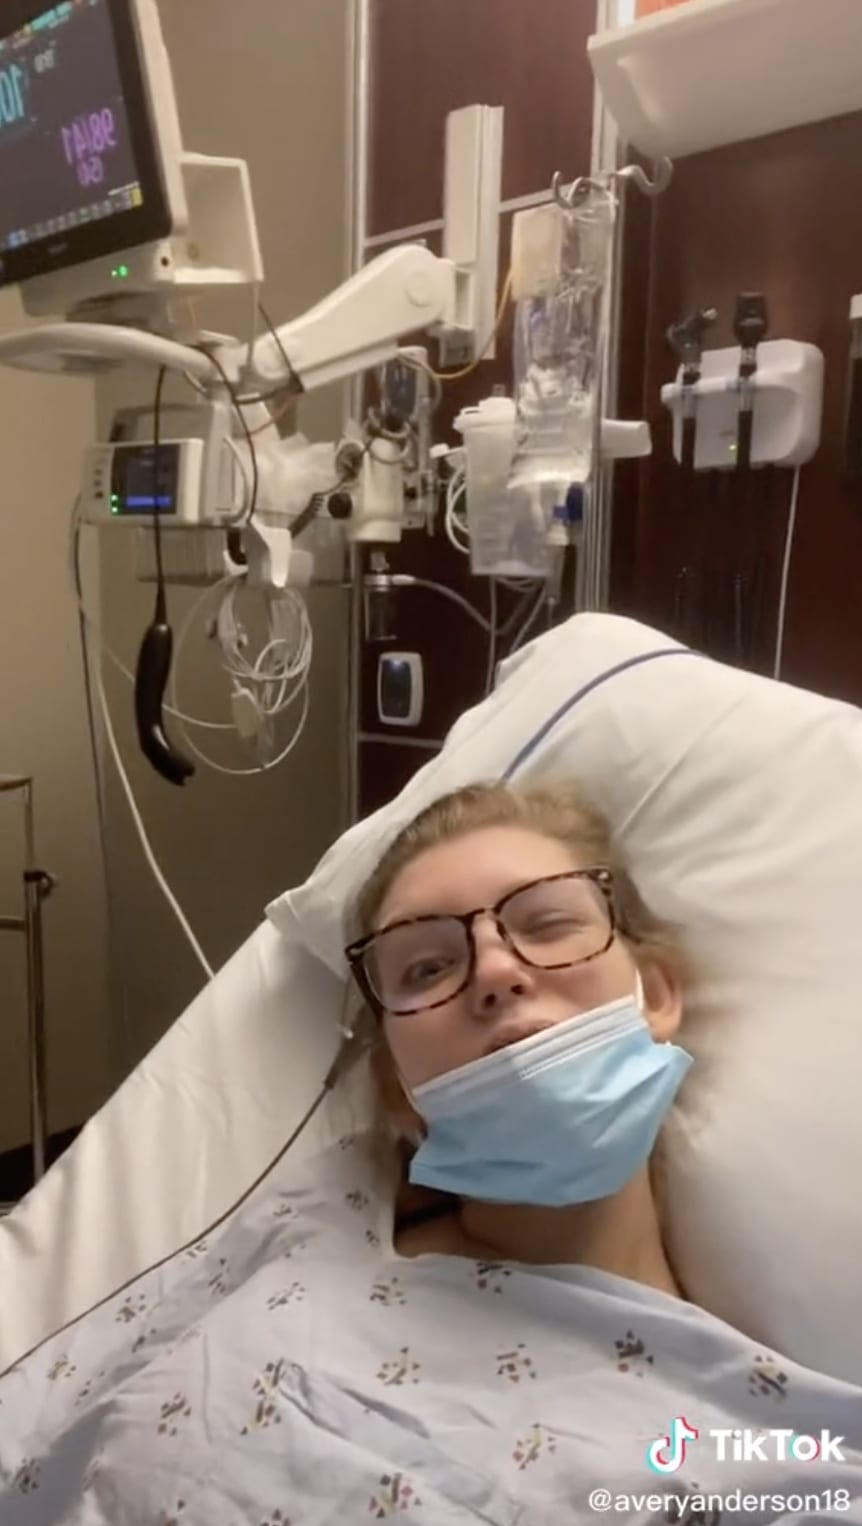 Avery in a hospital bed with a face mask on